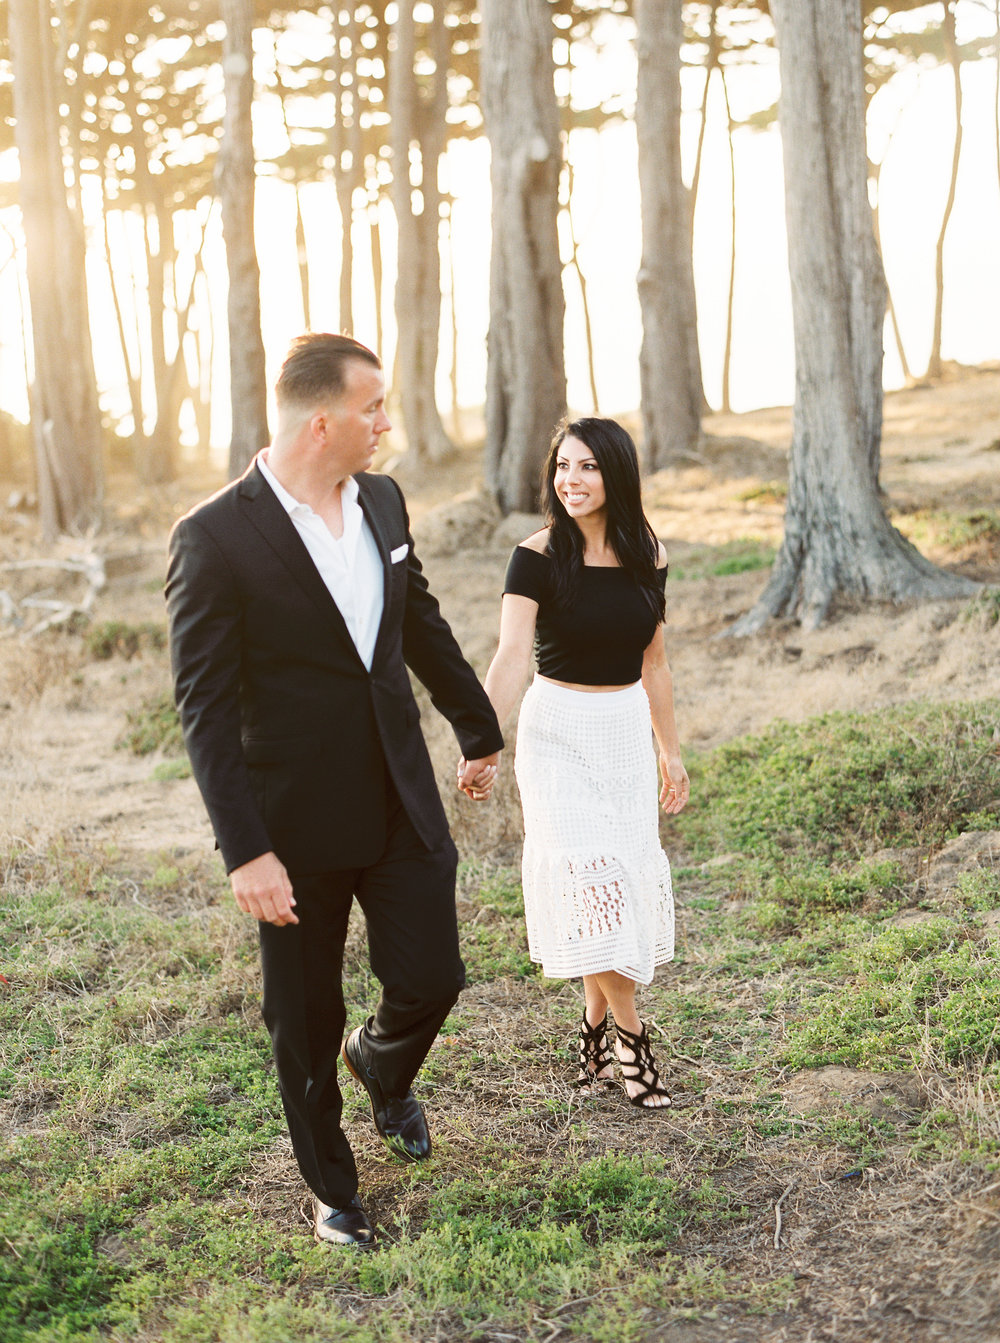 Suto-baths-engagement-photography-29.jpg